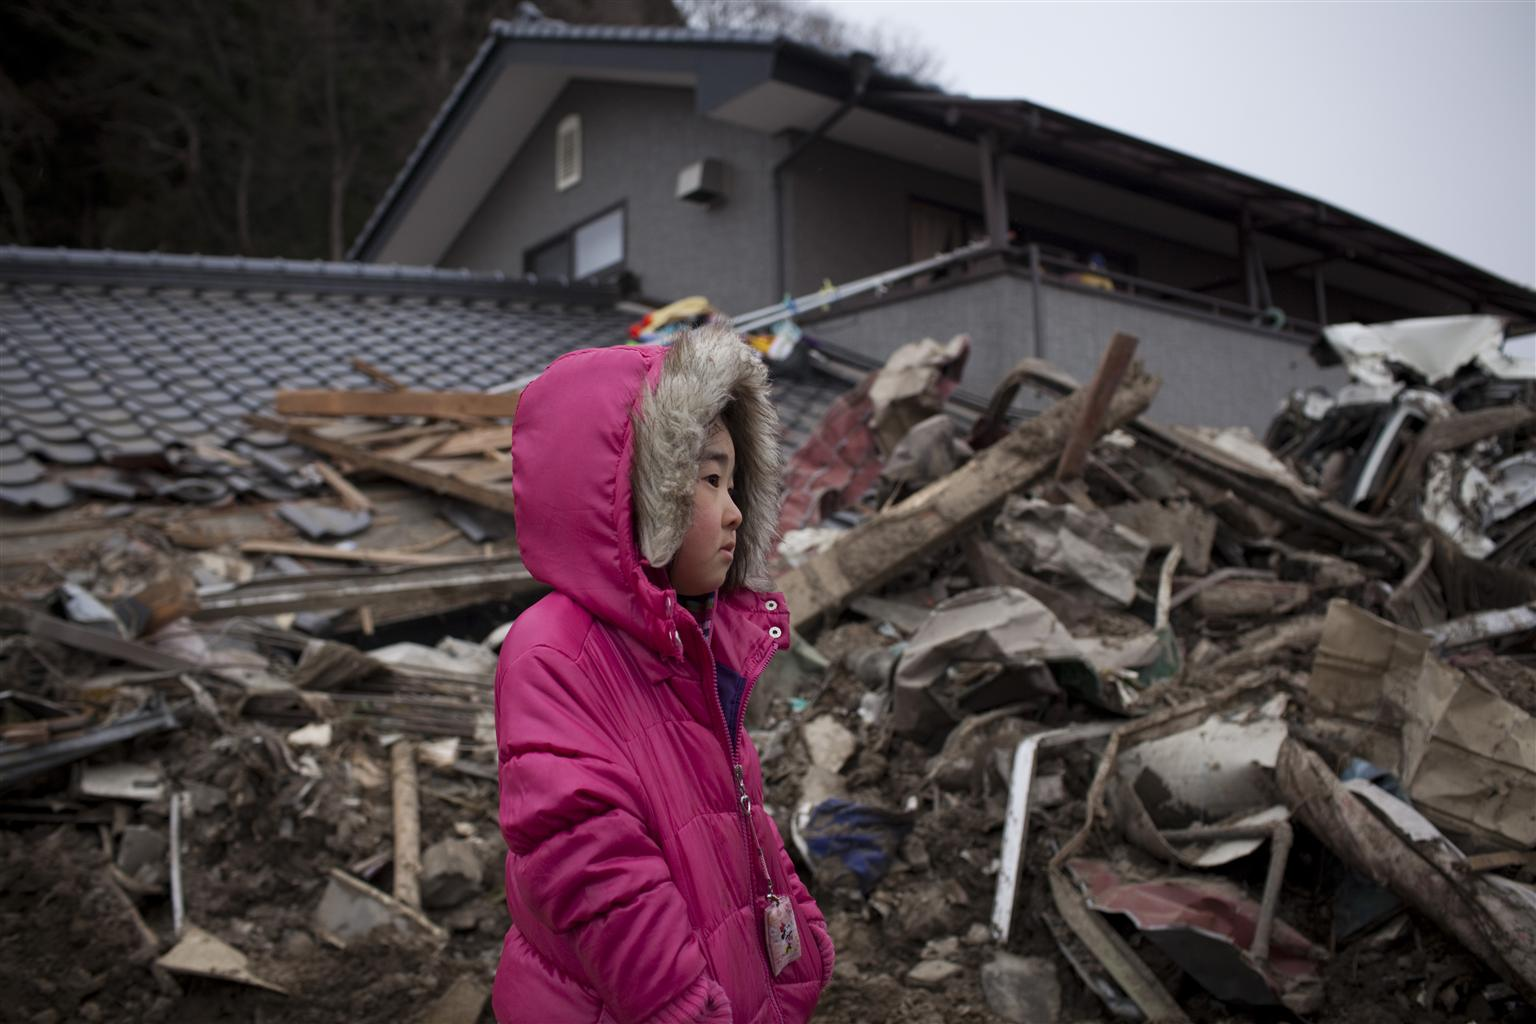 Neena (5) surveys the wreckage of her home, which was destroyed by the 2011 tsunami in Japan.